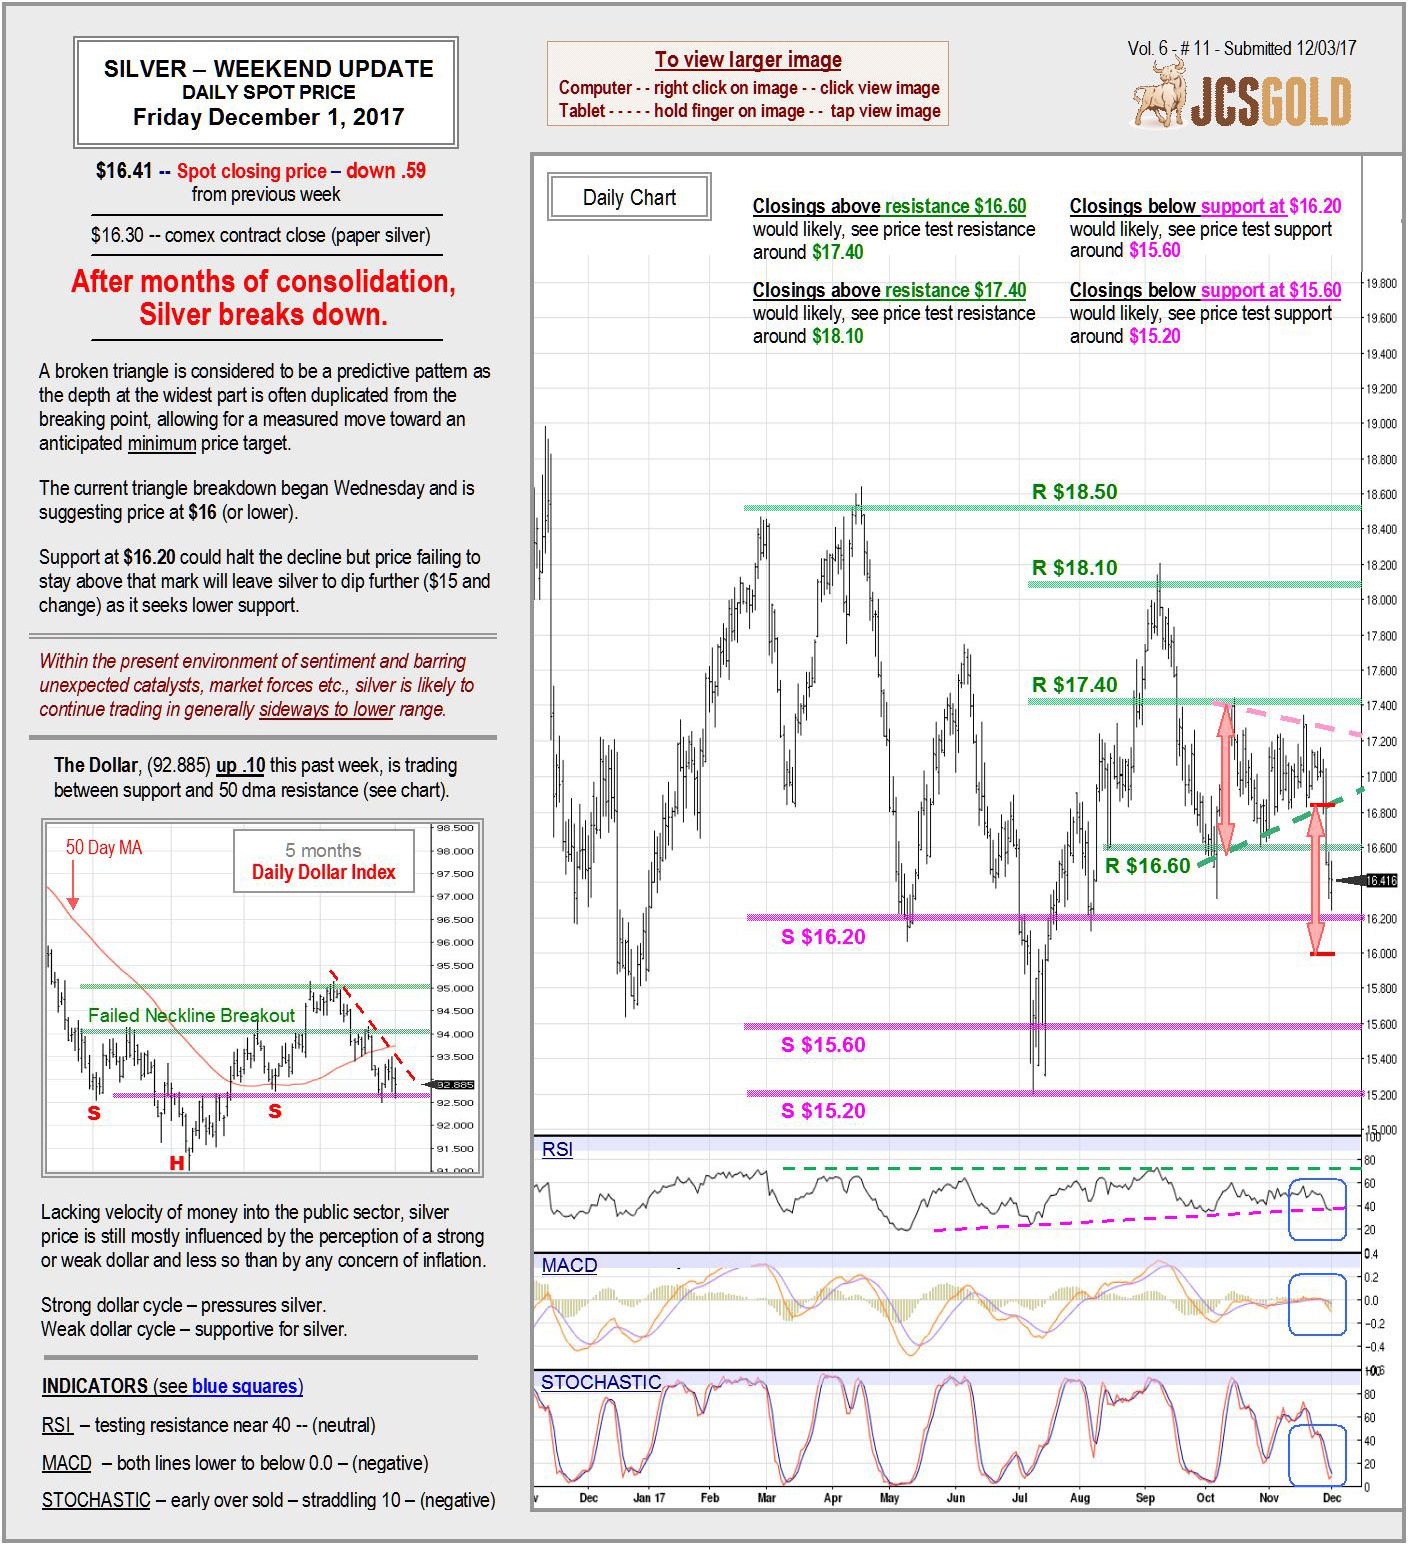 Dec 1, 2017 chart & commentary